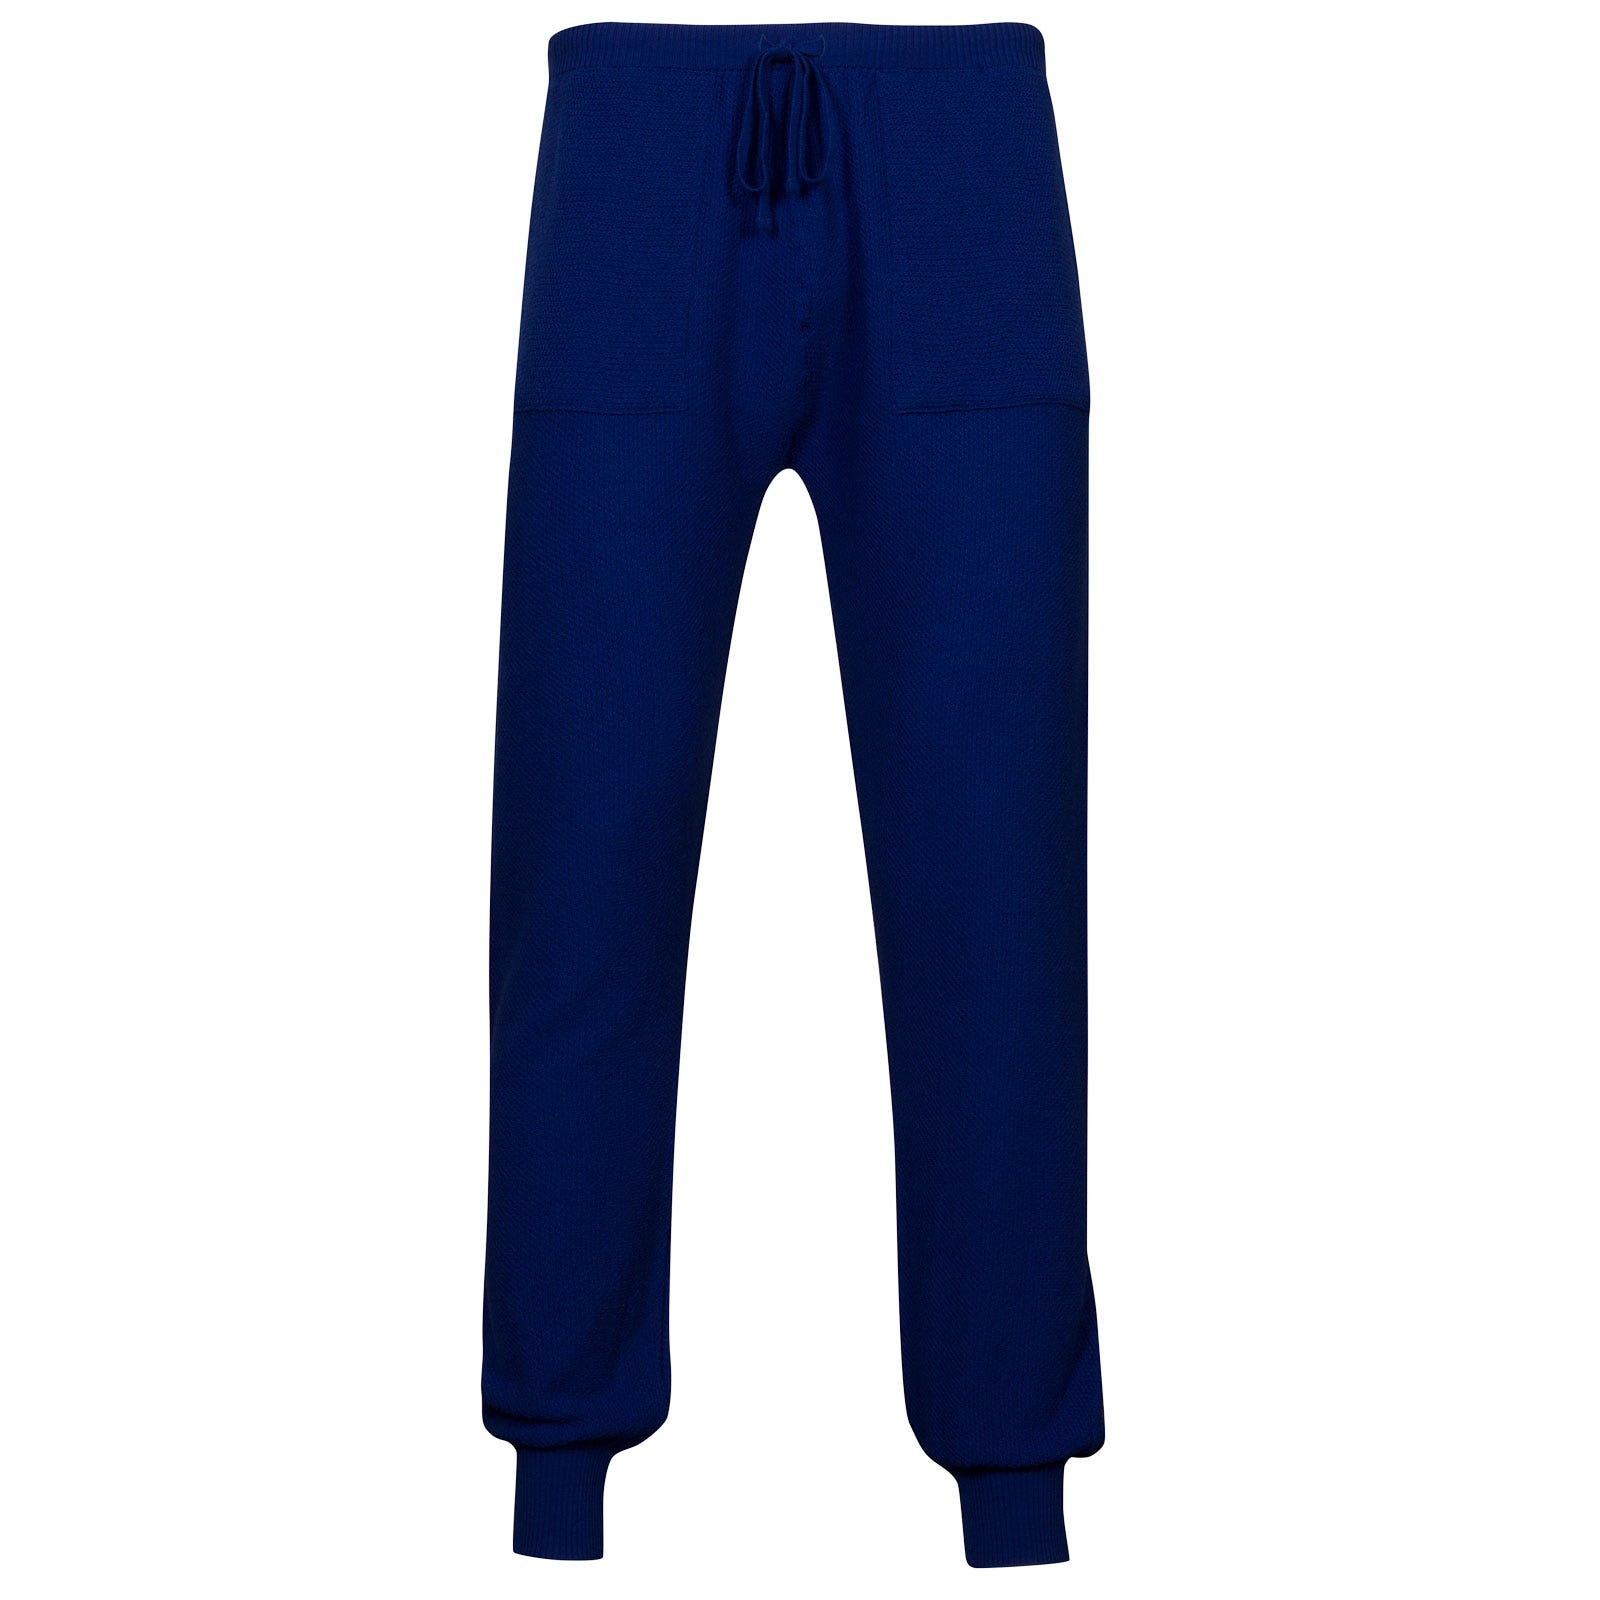 John Smedley 5Singular Merino Wool Trouser in Coniston Blue-S